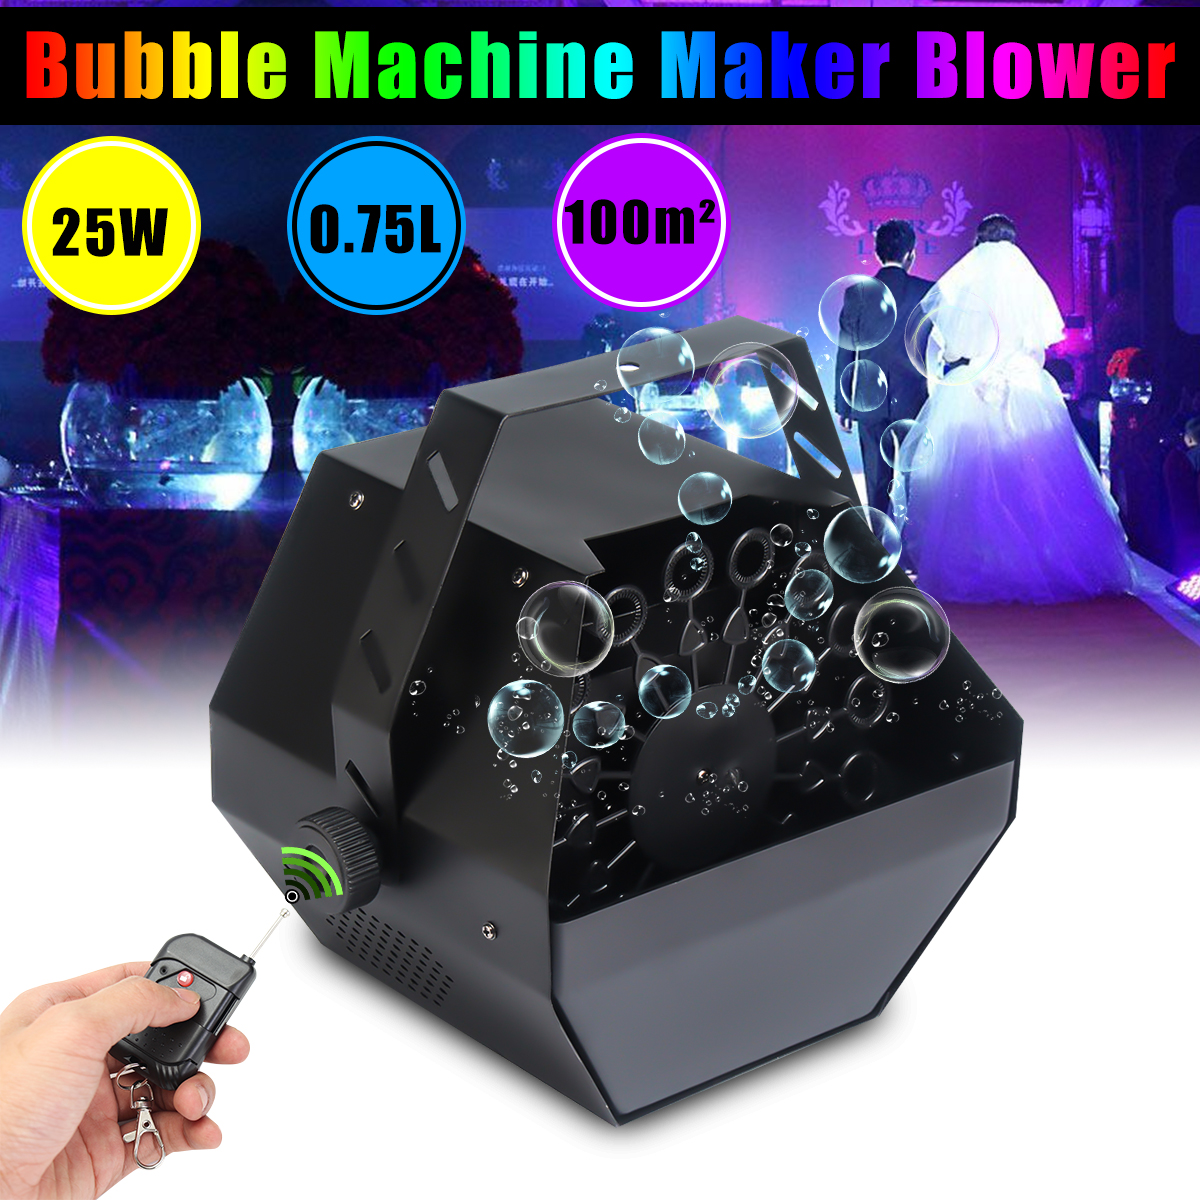 цена на 220-240V Automatic Bubble Machine Maker Blower Electric Bubble Making Equipment Mini Wireless Remote Control Stage Party Effect